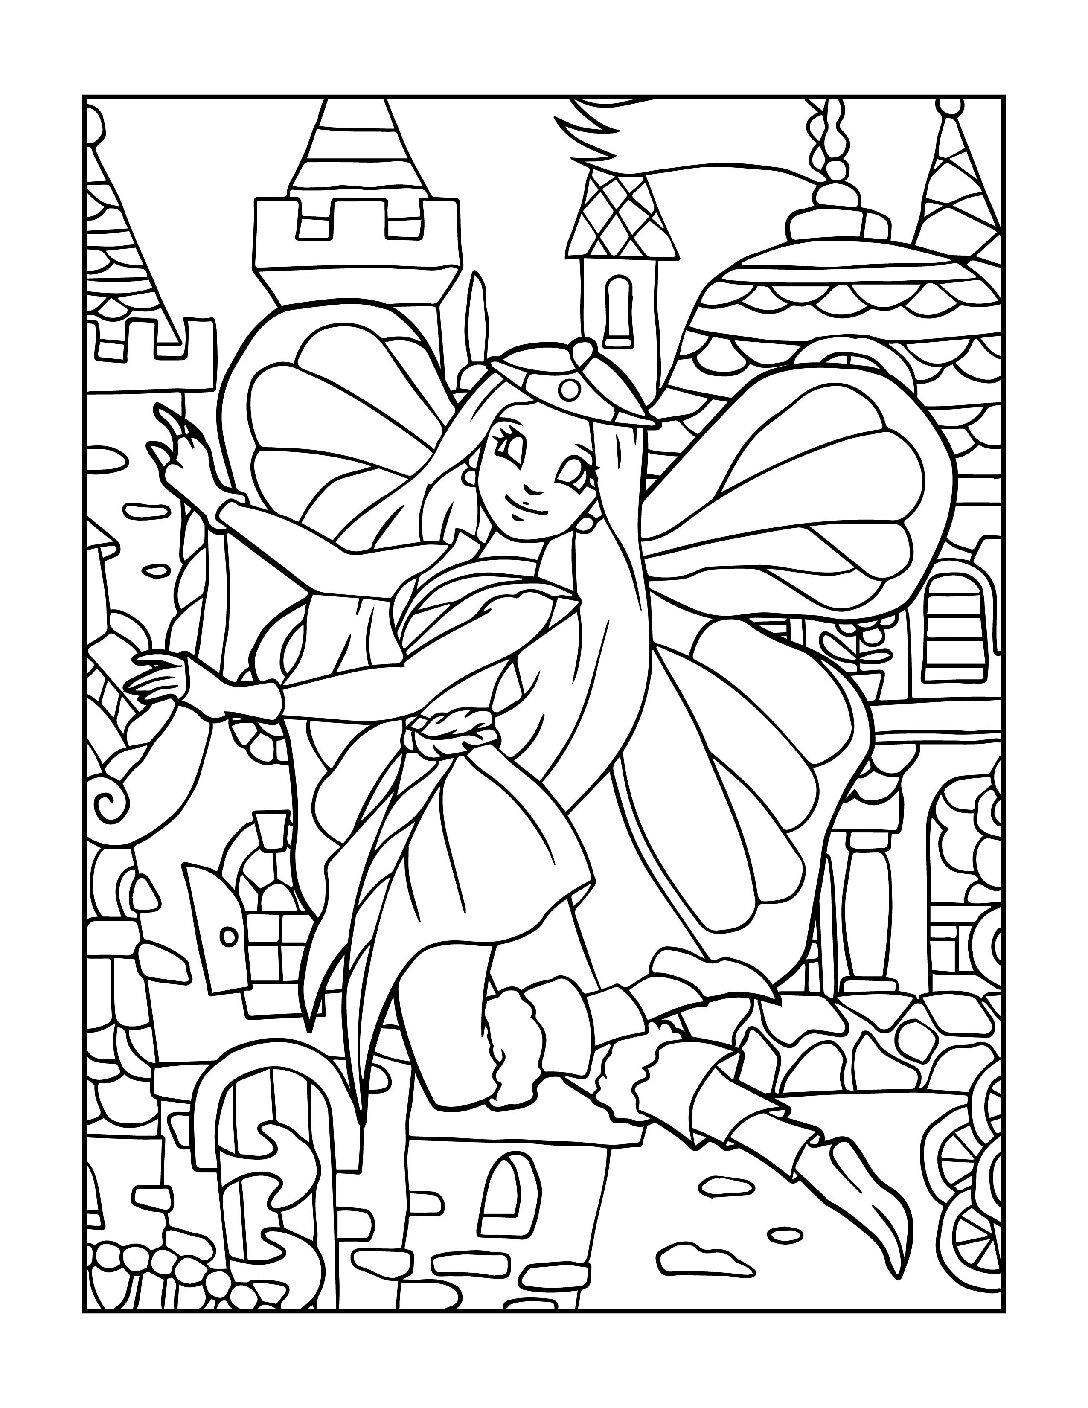 Coloring-Pages-Fairies-9-01-pdf Free Printable Fairy Colouring Pages